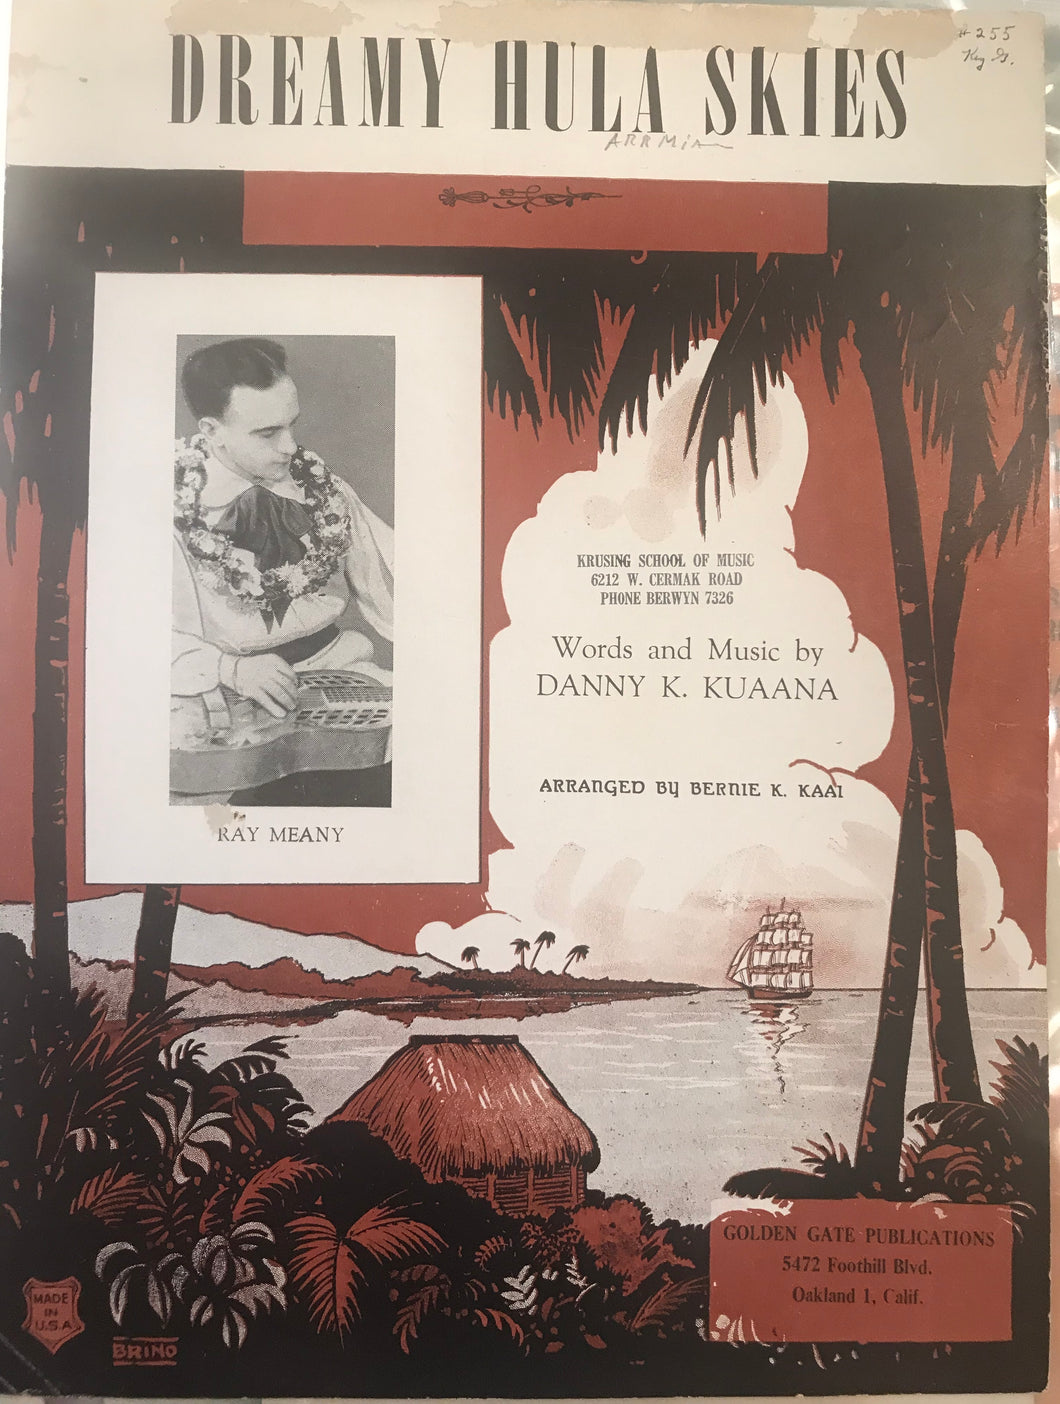 Hawaiian Sheet Music: 'Dreamy Hula Skies'